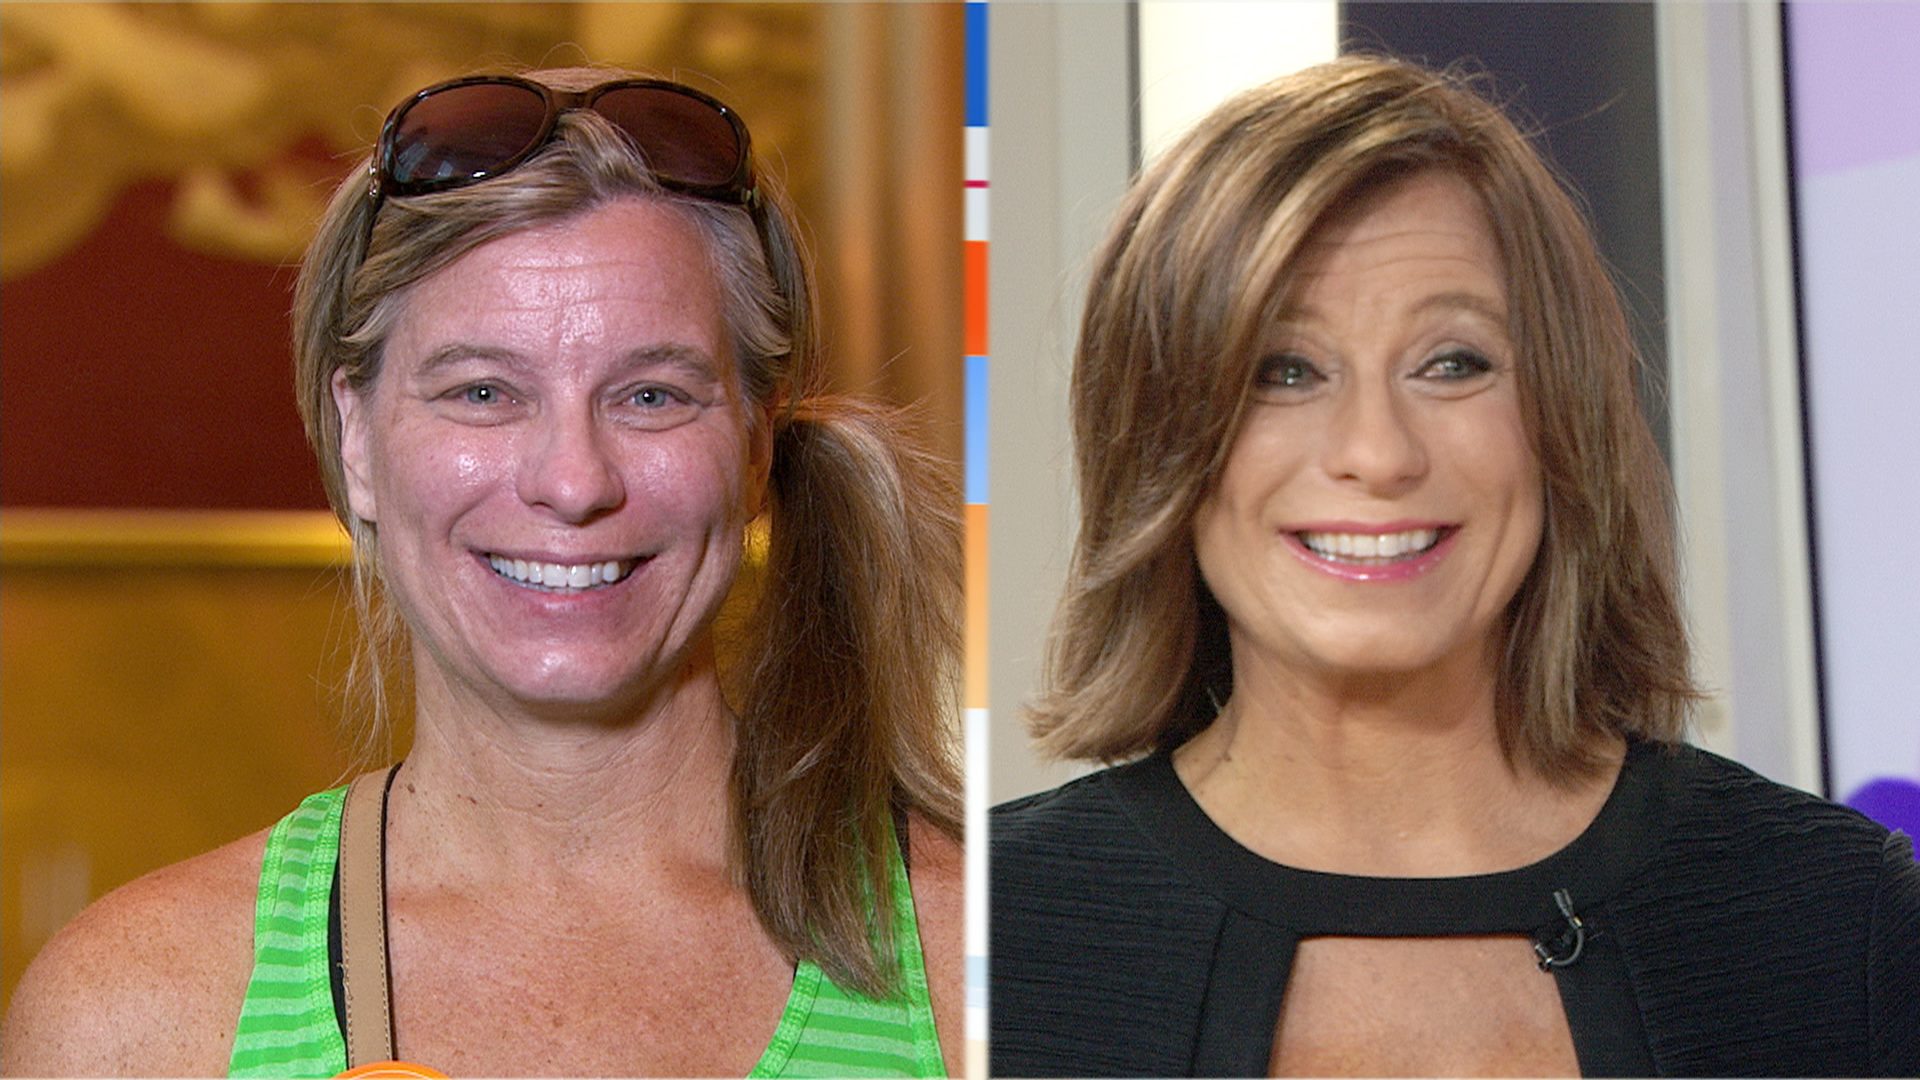 Two women in their 40s get younger looks, thanks to Ambush